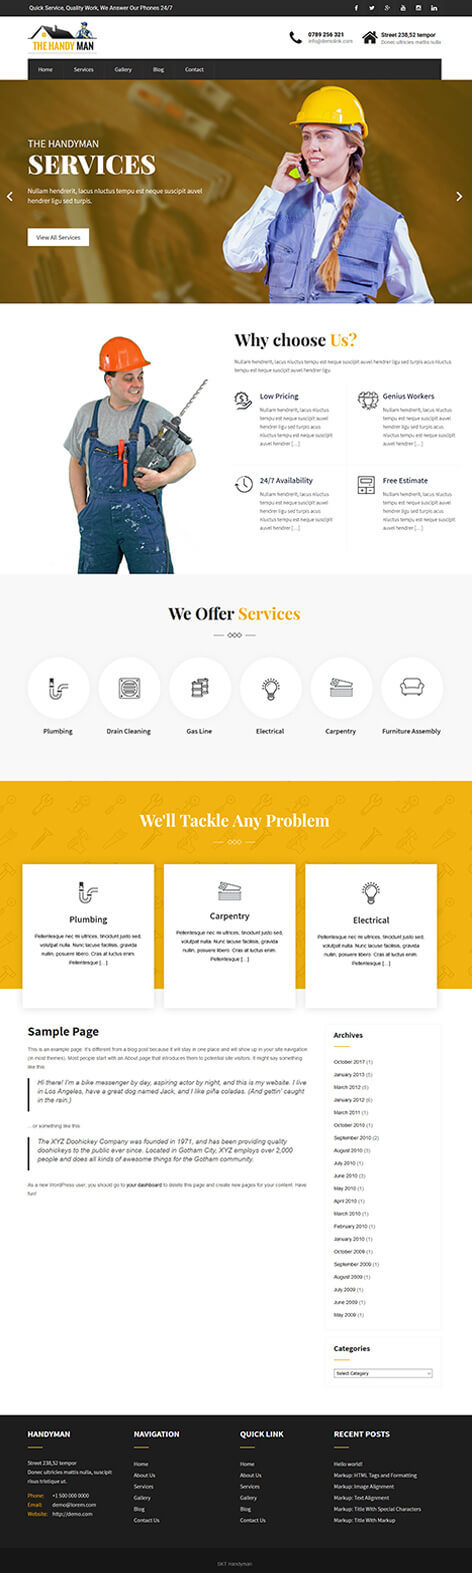 free home services WordPress theme